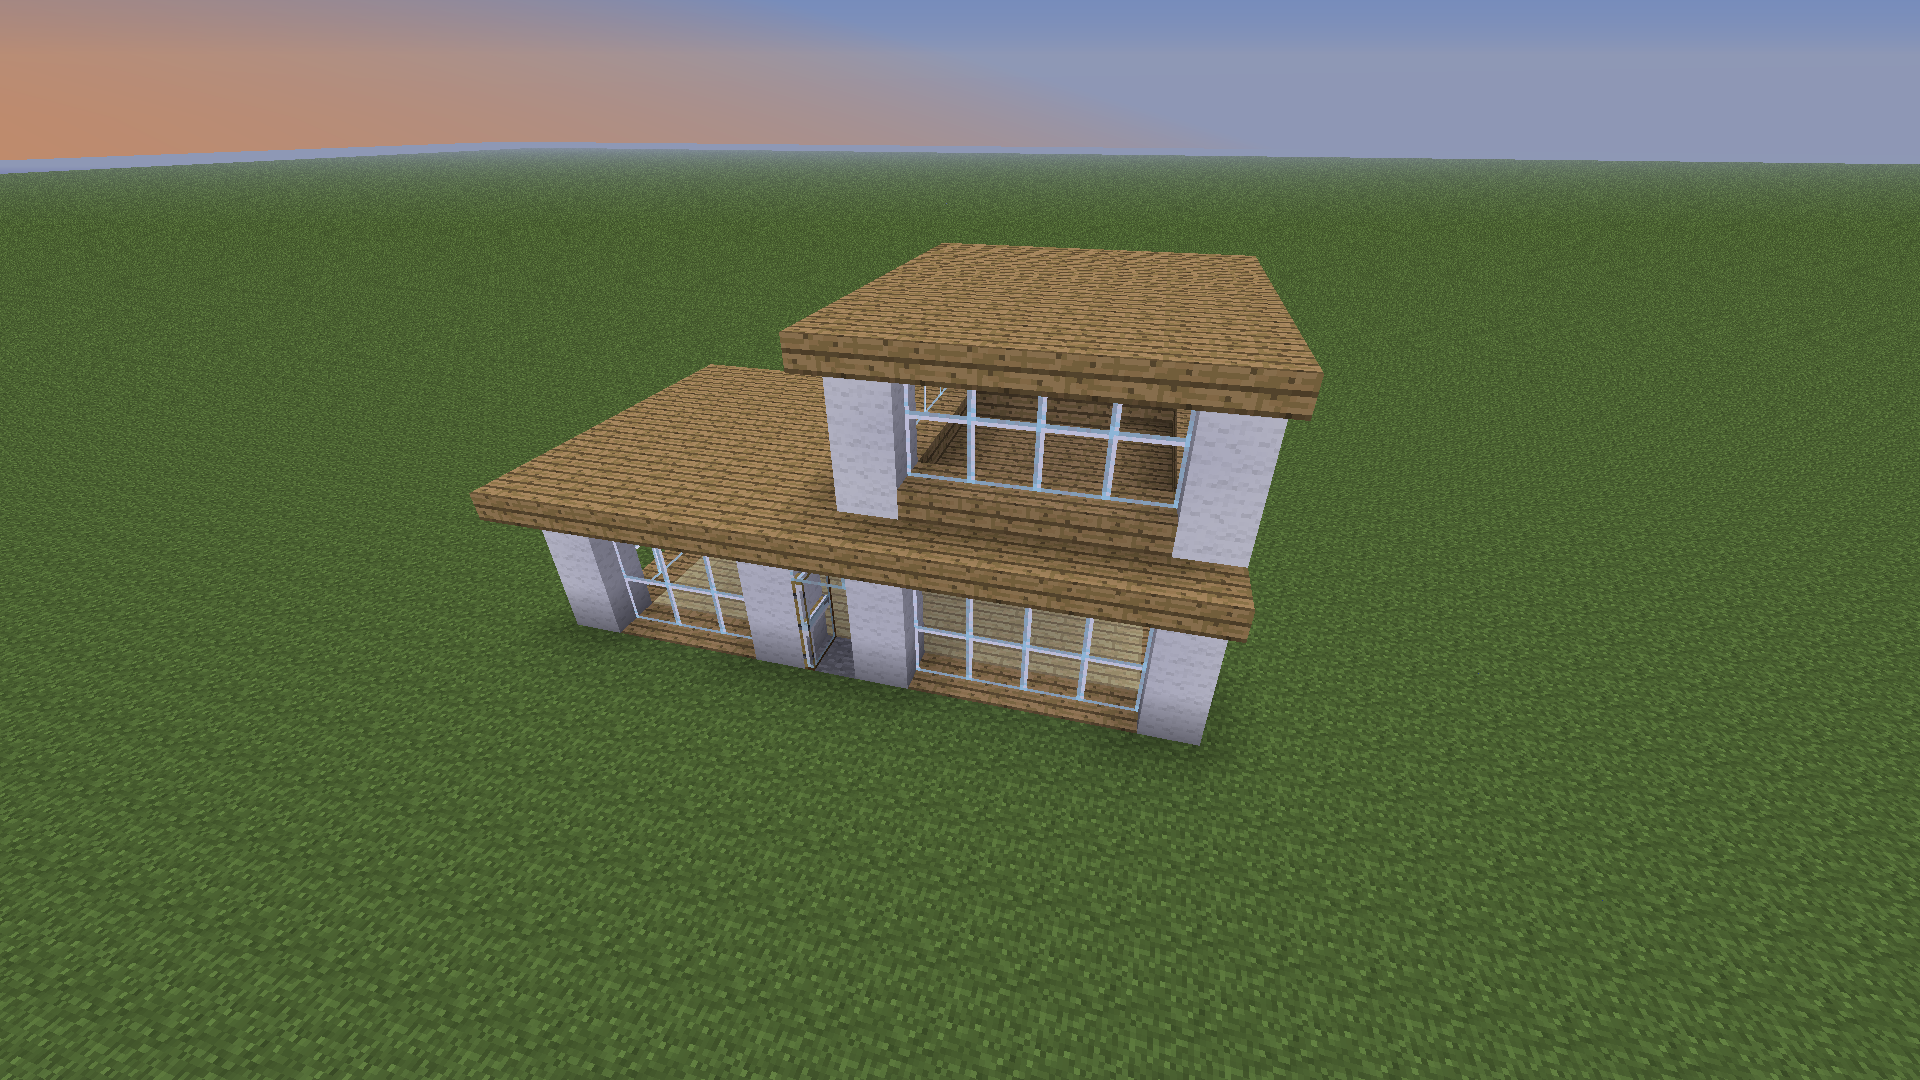 Easy minecraft houses on pinterest minecraft houses minecraft furniture an - Design house minecraft ...